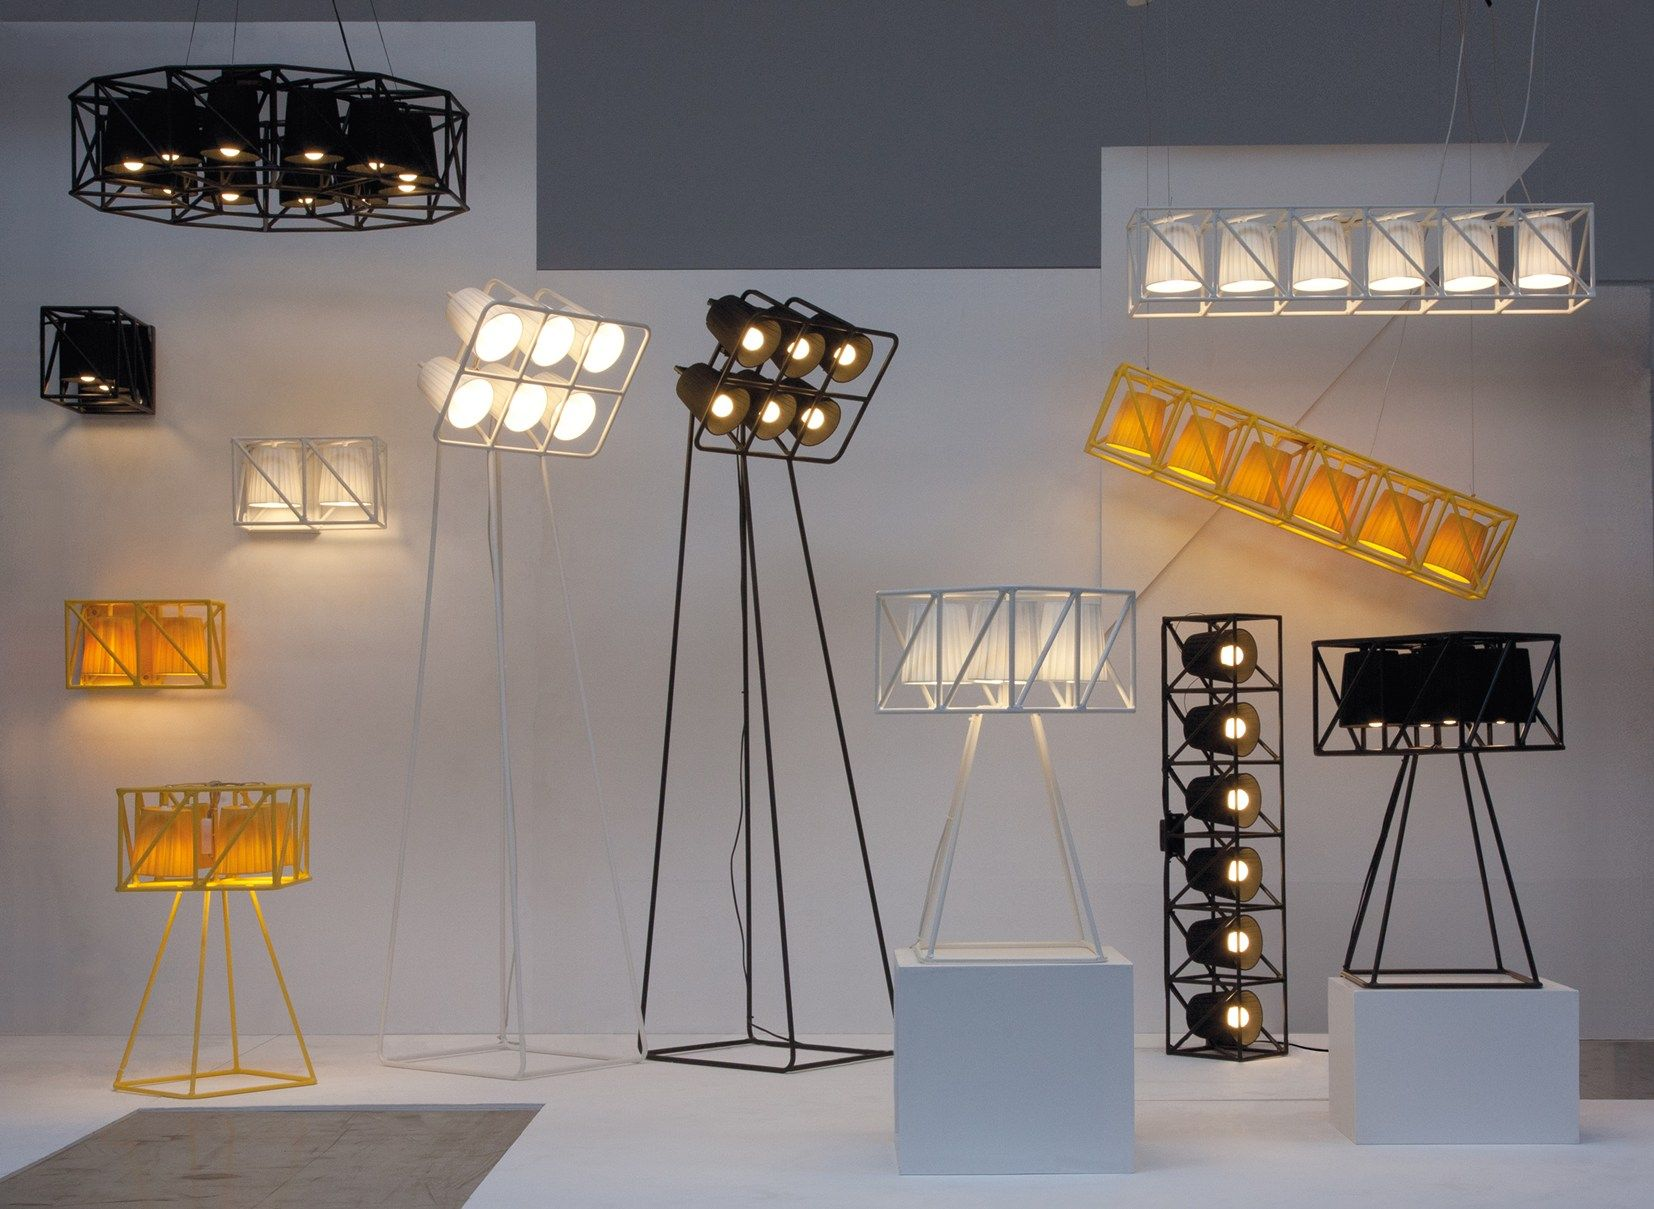 Seletti lighting personality irony contamination - Appliques murales style industriel ...